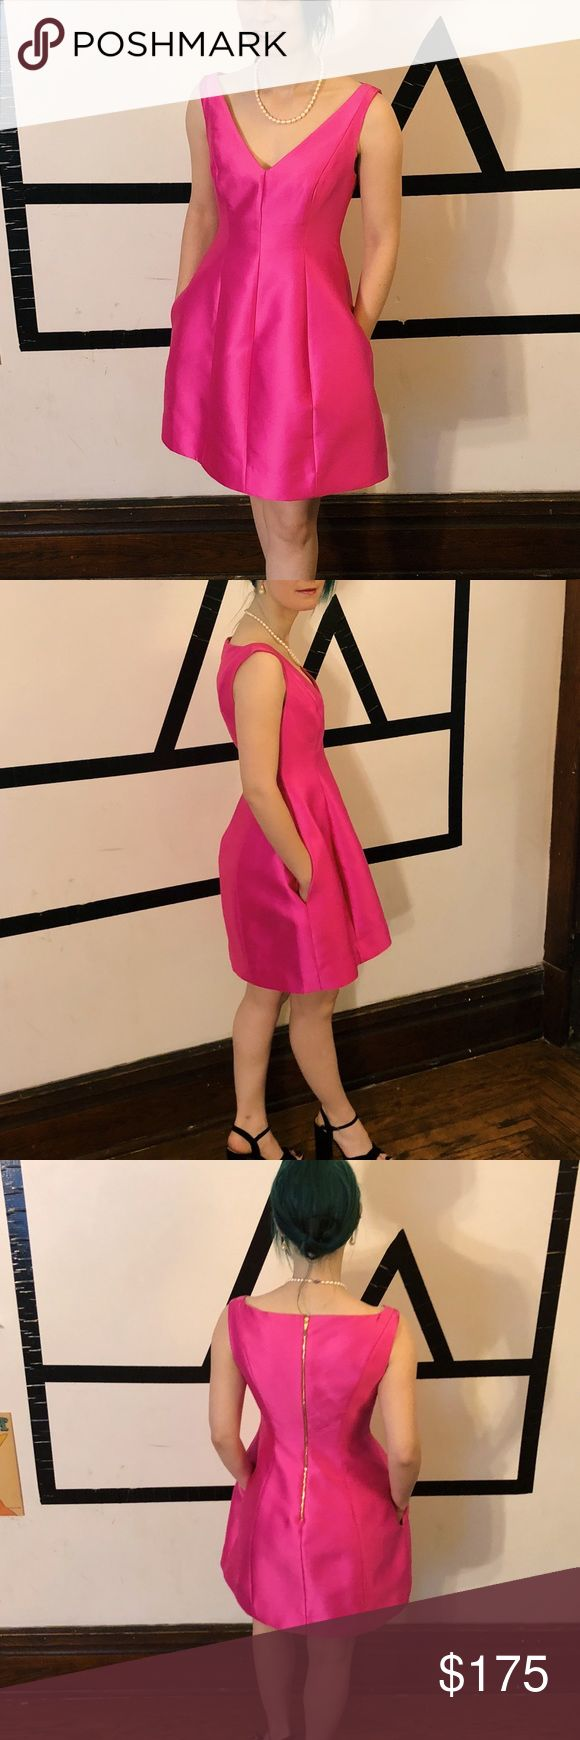 """Kate Spade Fit n Flare Cocktail Dredd Hot pink formal/cocktail dress with pockets! Also has bra strap holder on shoulders. Hem is finished with lace and the sheath under the dress is tacked down so it won't ride up. It's a 00, but I normally wear a 0 in most dress brands (Banana Republic, Calvin Klein). I'm 5'1"""" so the dress may be shorter on you if you're taller.  Beautiful, quality dress that is simple but will get you noticed! kate spade Dresses Mini"""